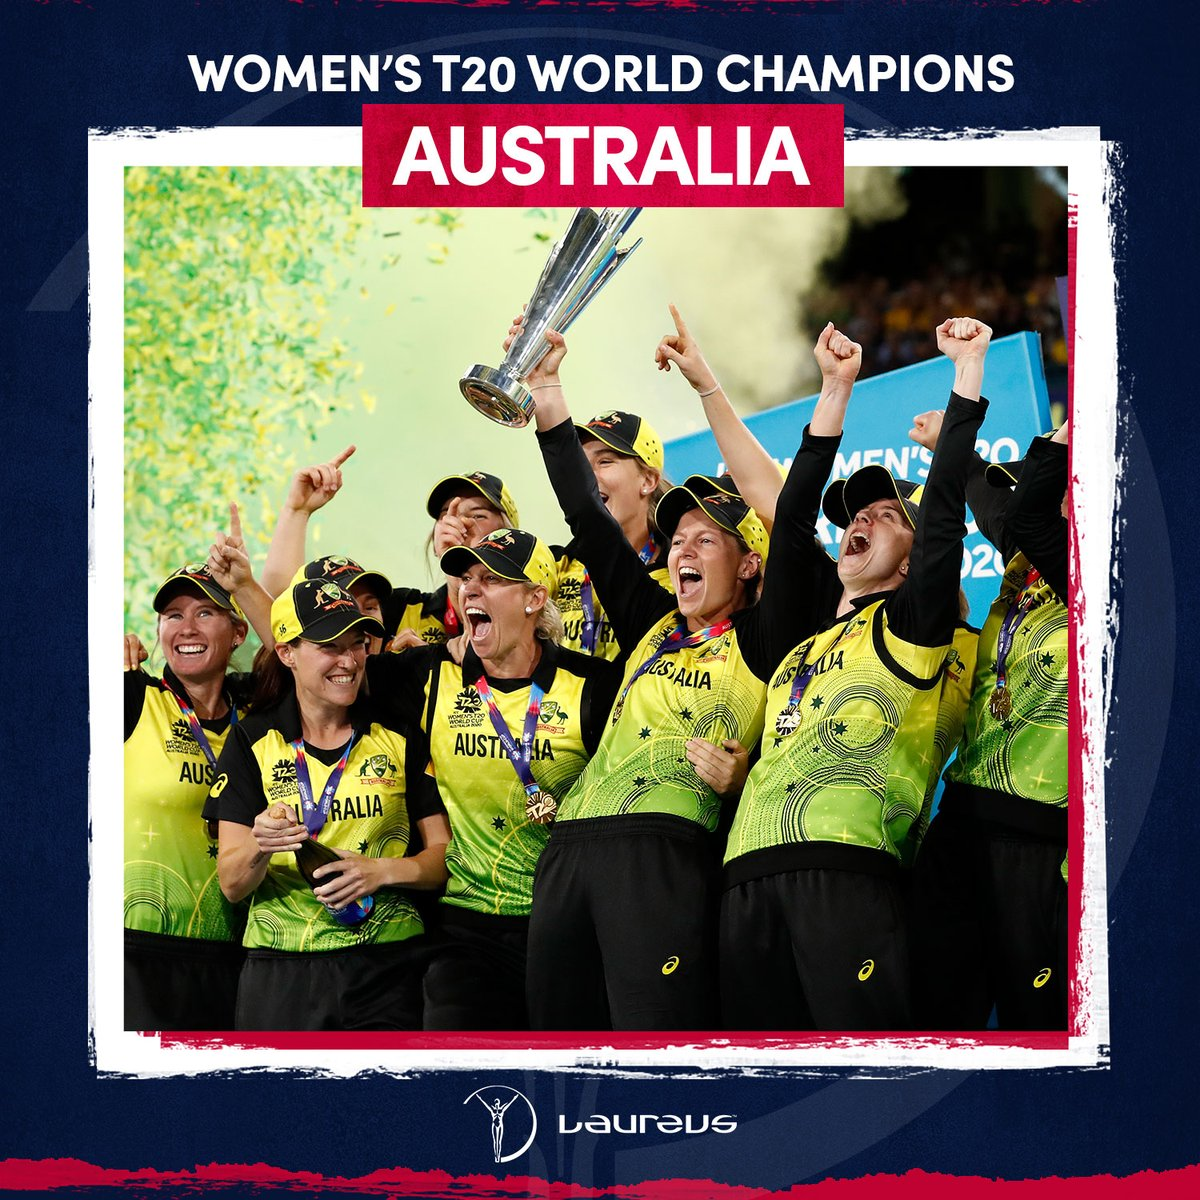 🏆 @AusWomenCricket 🇦🇺  On #InternationalWomensDay the hosts win their fifth Women's T20 World Cup title in front of 86,174 🙌  #CmonAussie #IWD2020 #SportUnitesUs